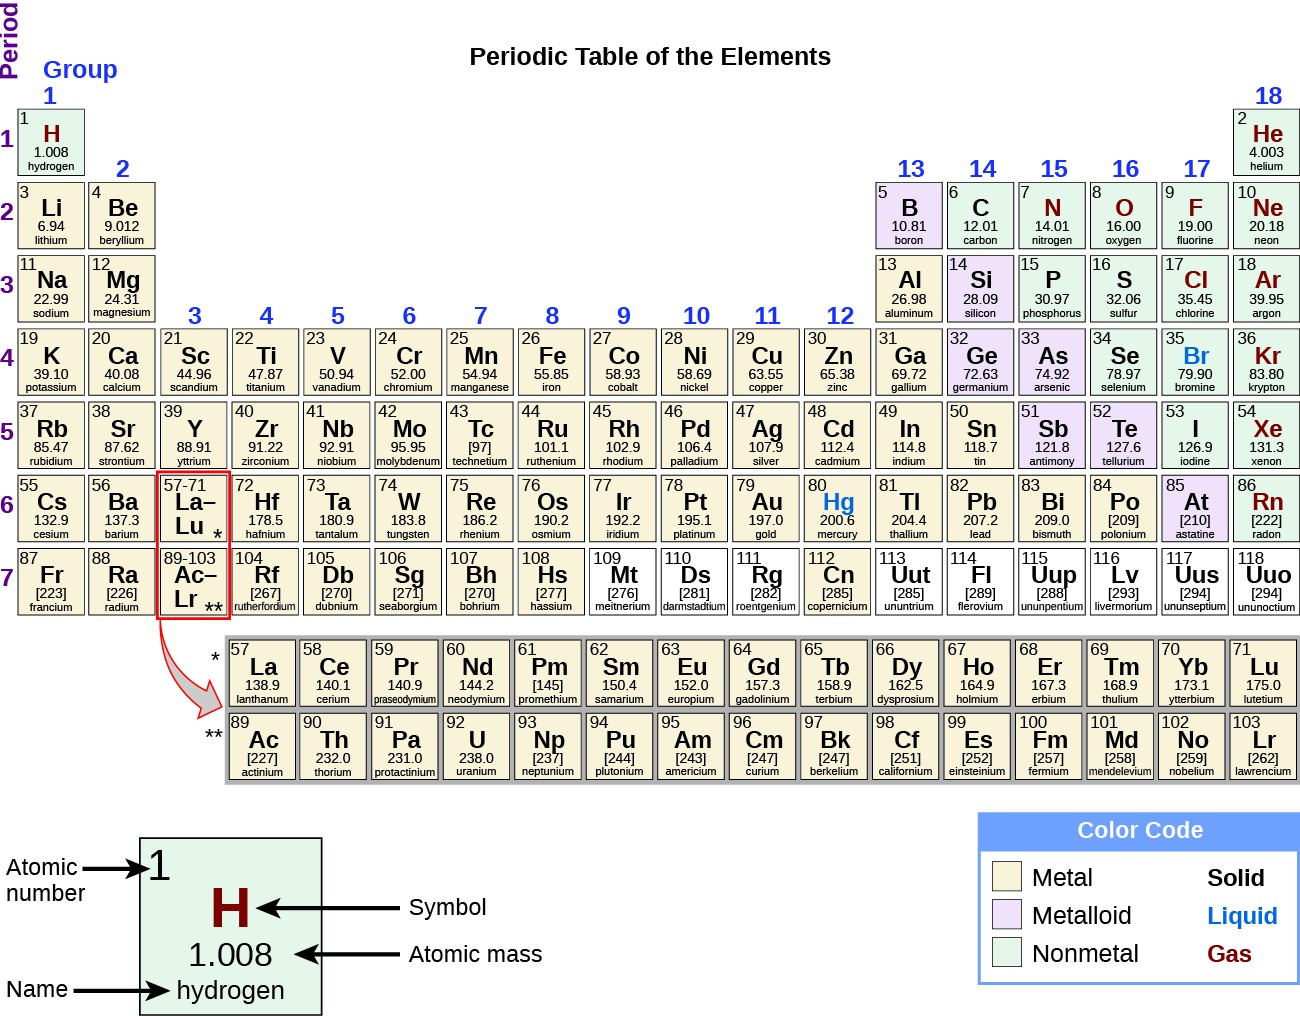 The periodic table chem 1305 general chemistry ilecture the periodic table of elements is shown the 18 columns are labeled group gamestrikefo Image collections